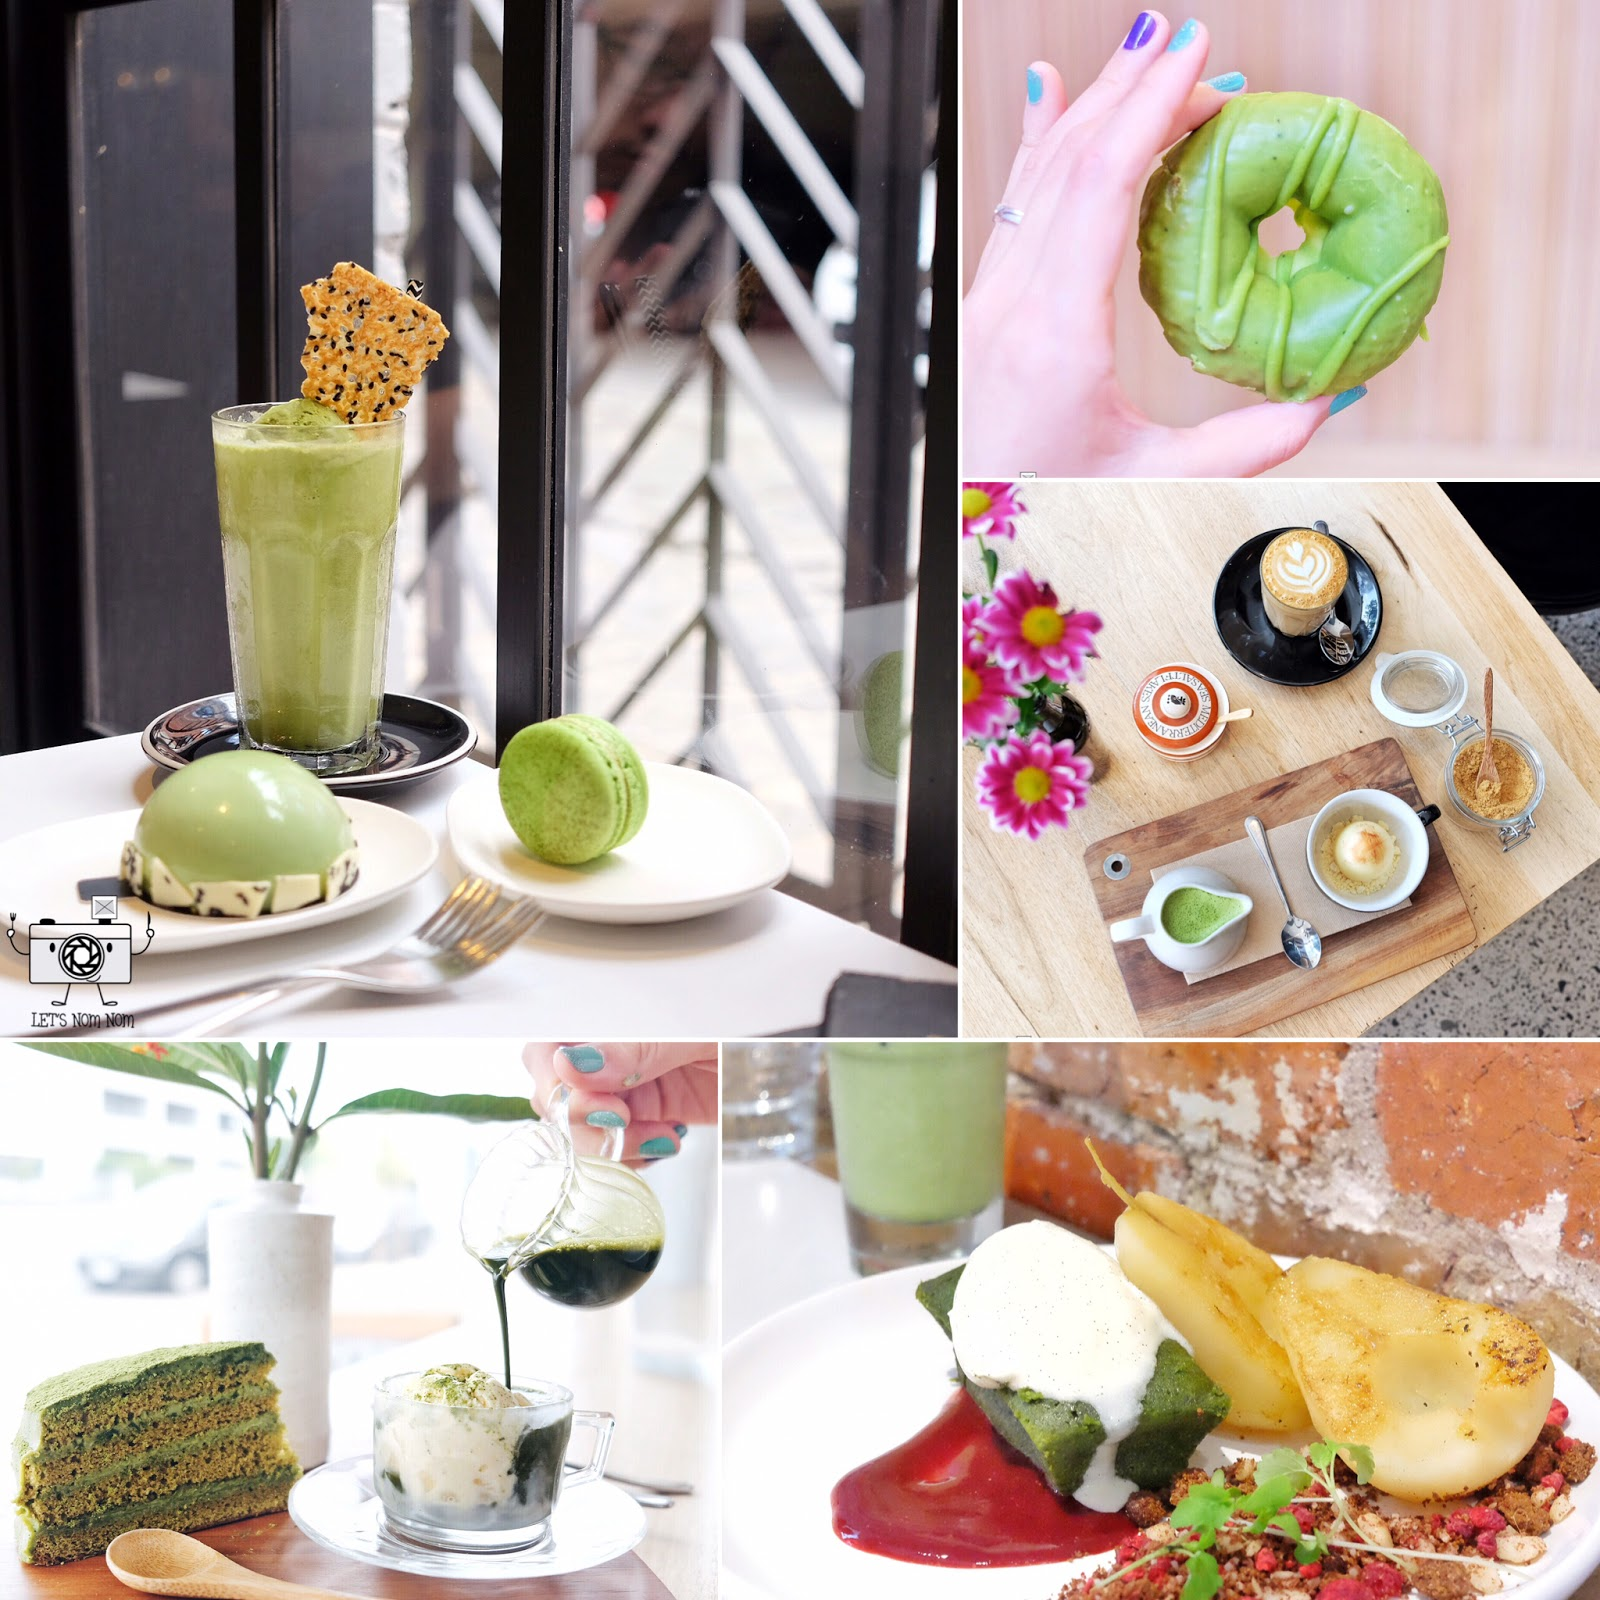 Top 5 Places For Matcha In Melbourne